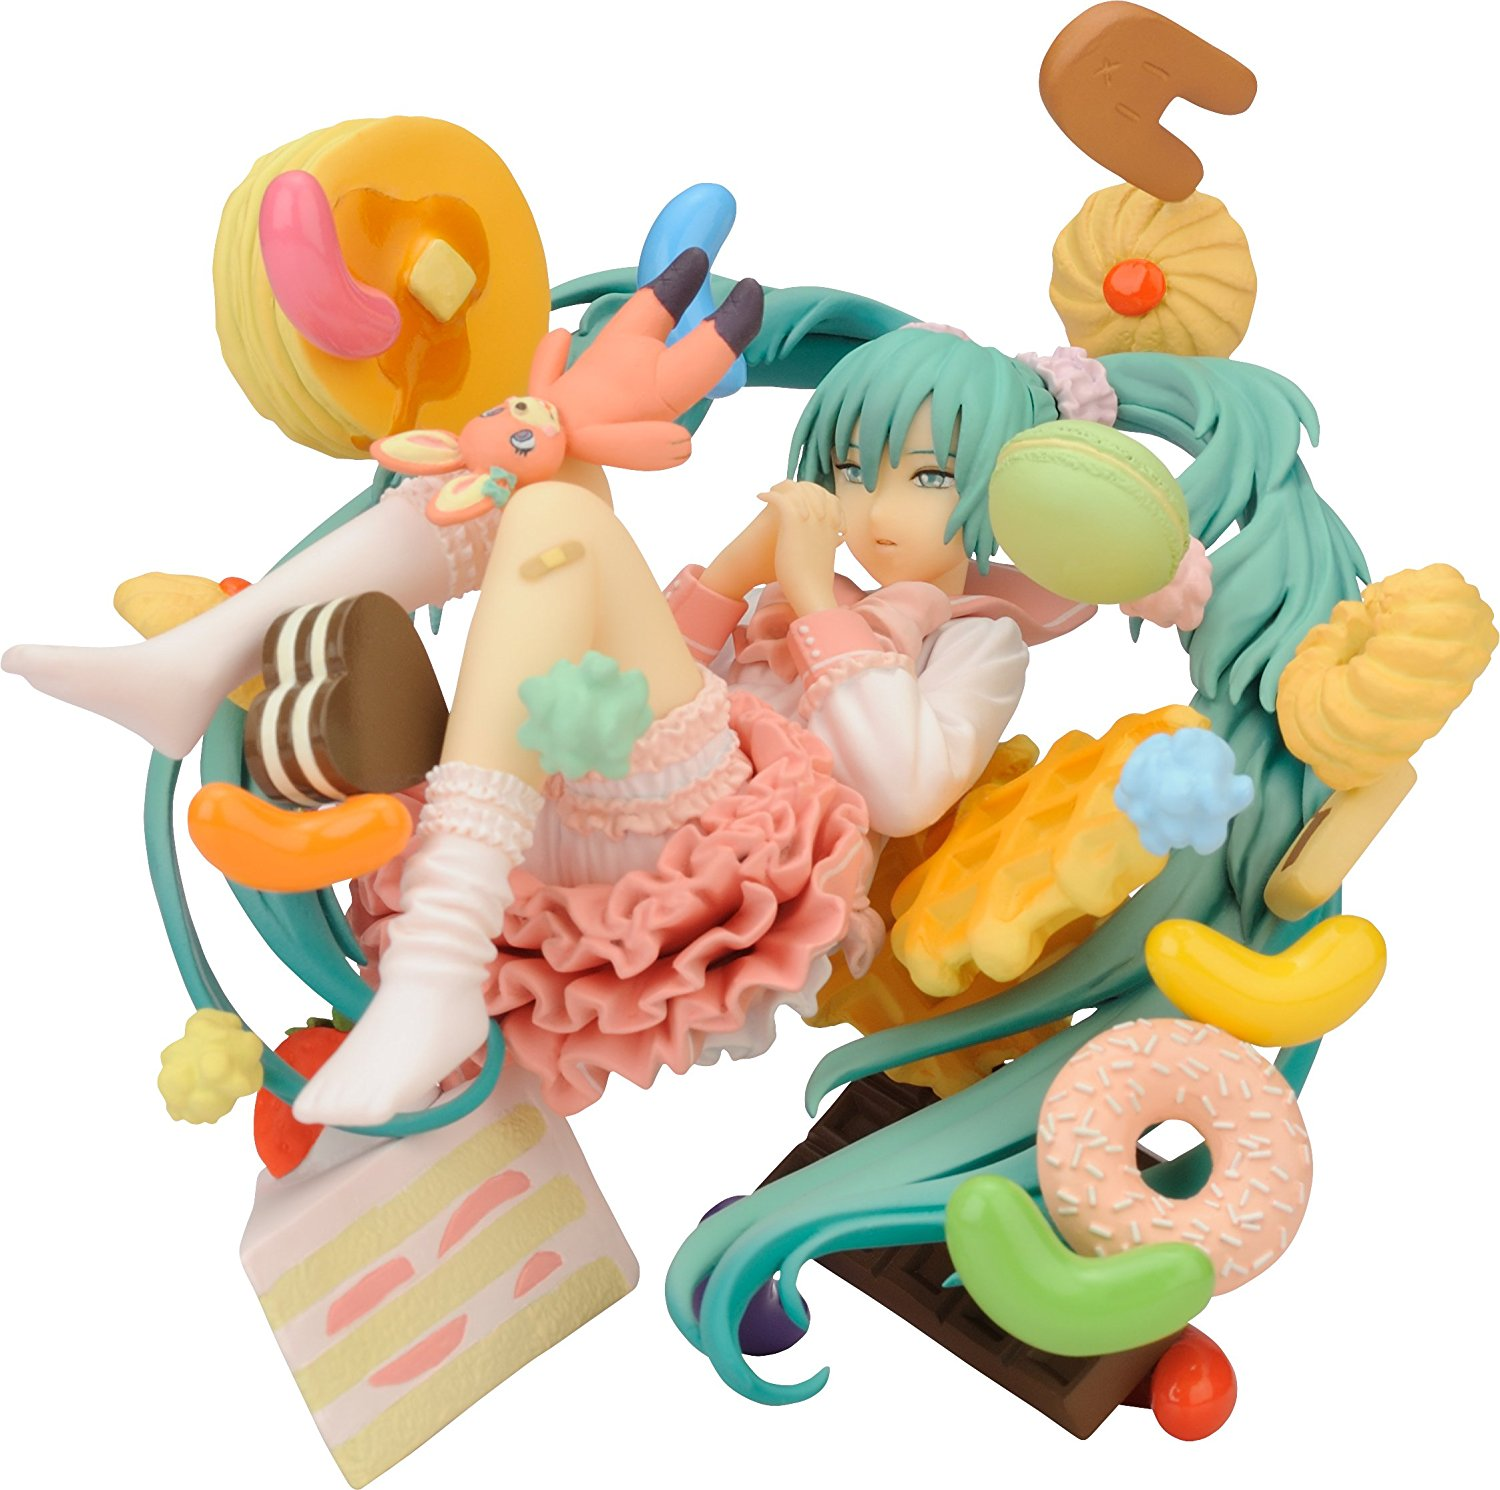 Hatsune Miku, LOL Lots of Laugh - Mikumo, Vocaloid, Original Collection, Hobby Stock